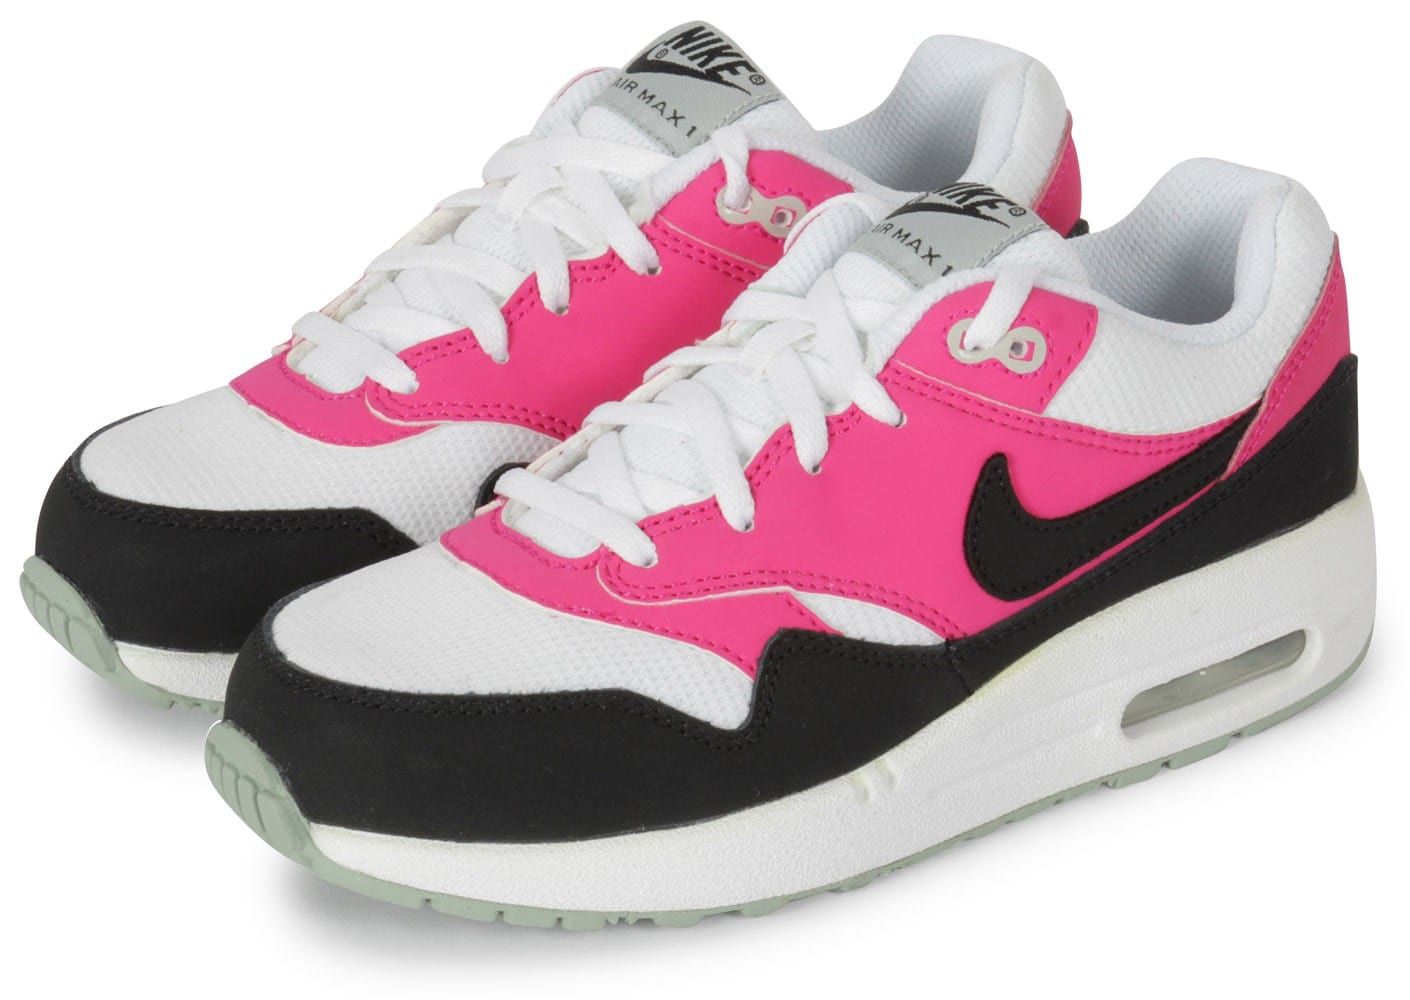 nike air max 1 enfant rose chaussures chaussures chausport. Black Bedroom Furniture Sets. Home Design Ideas